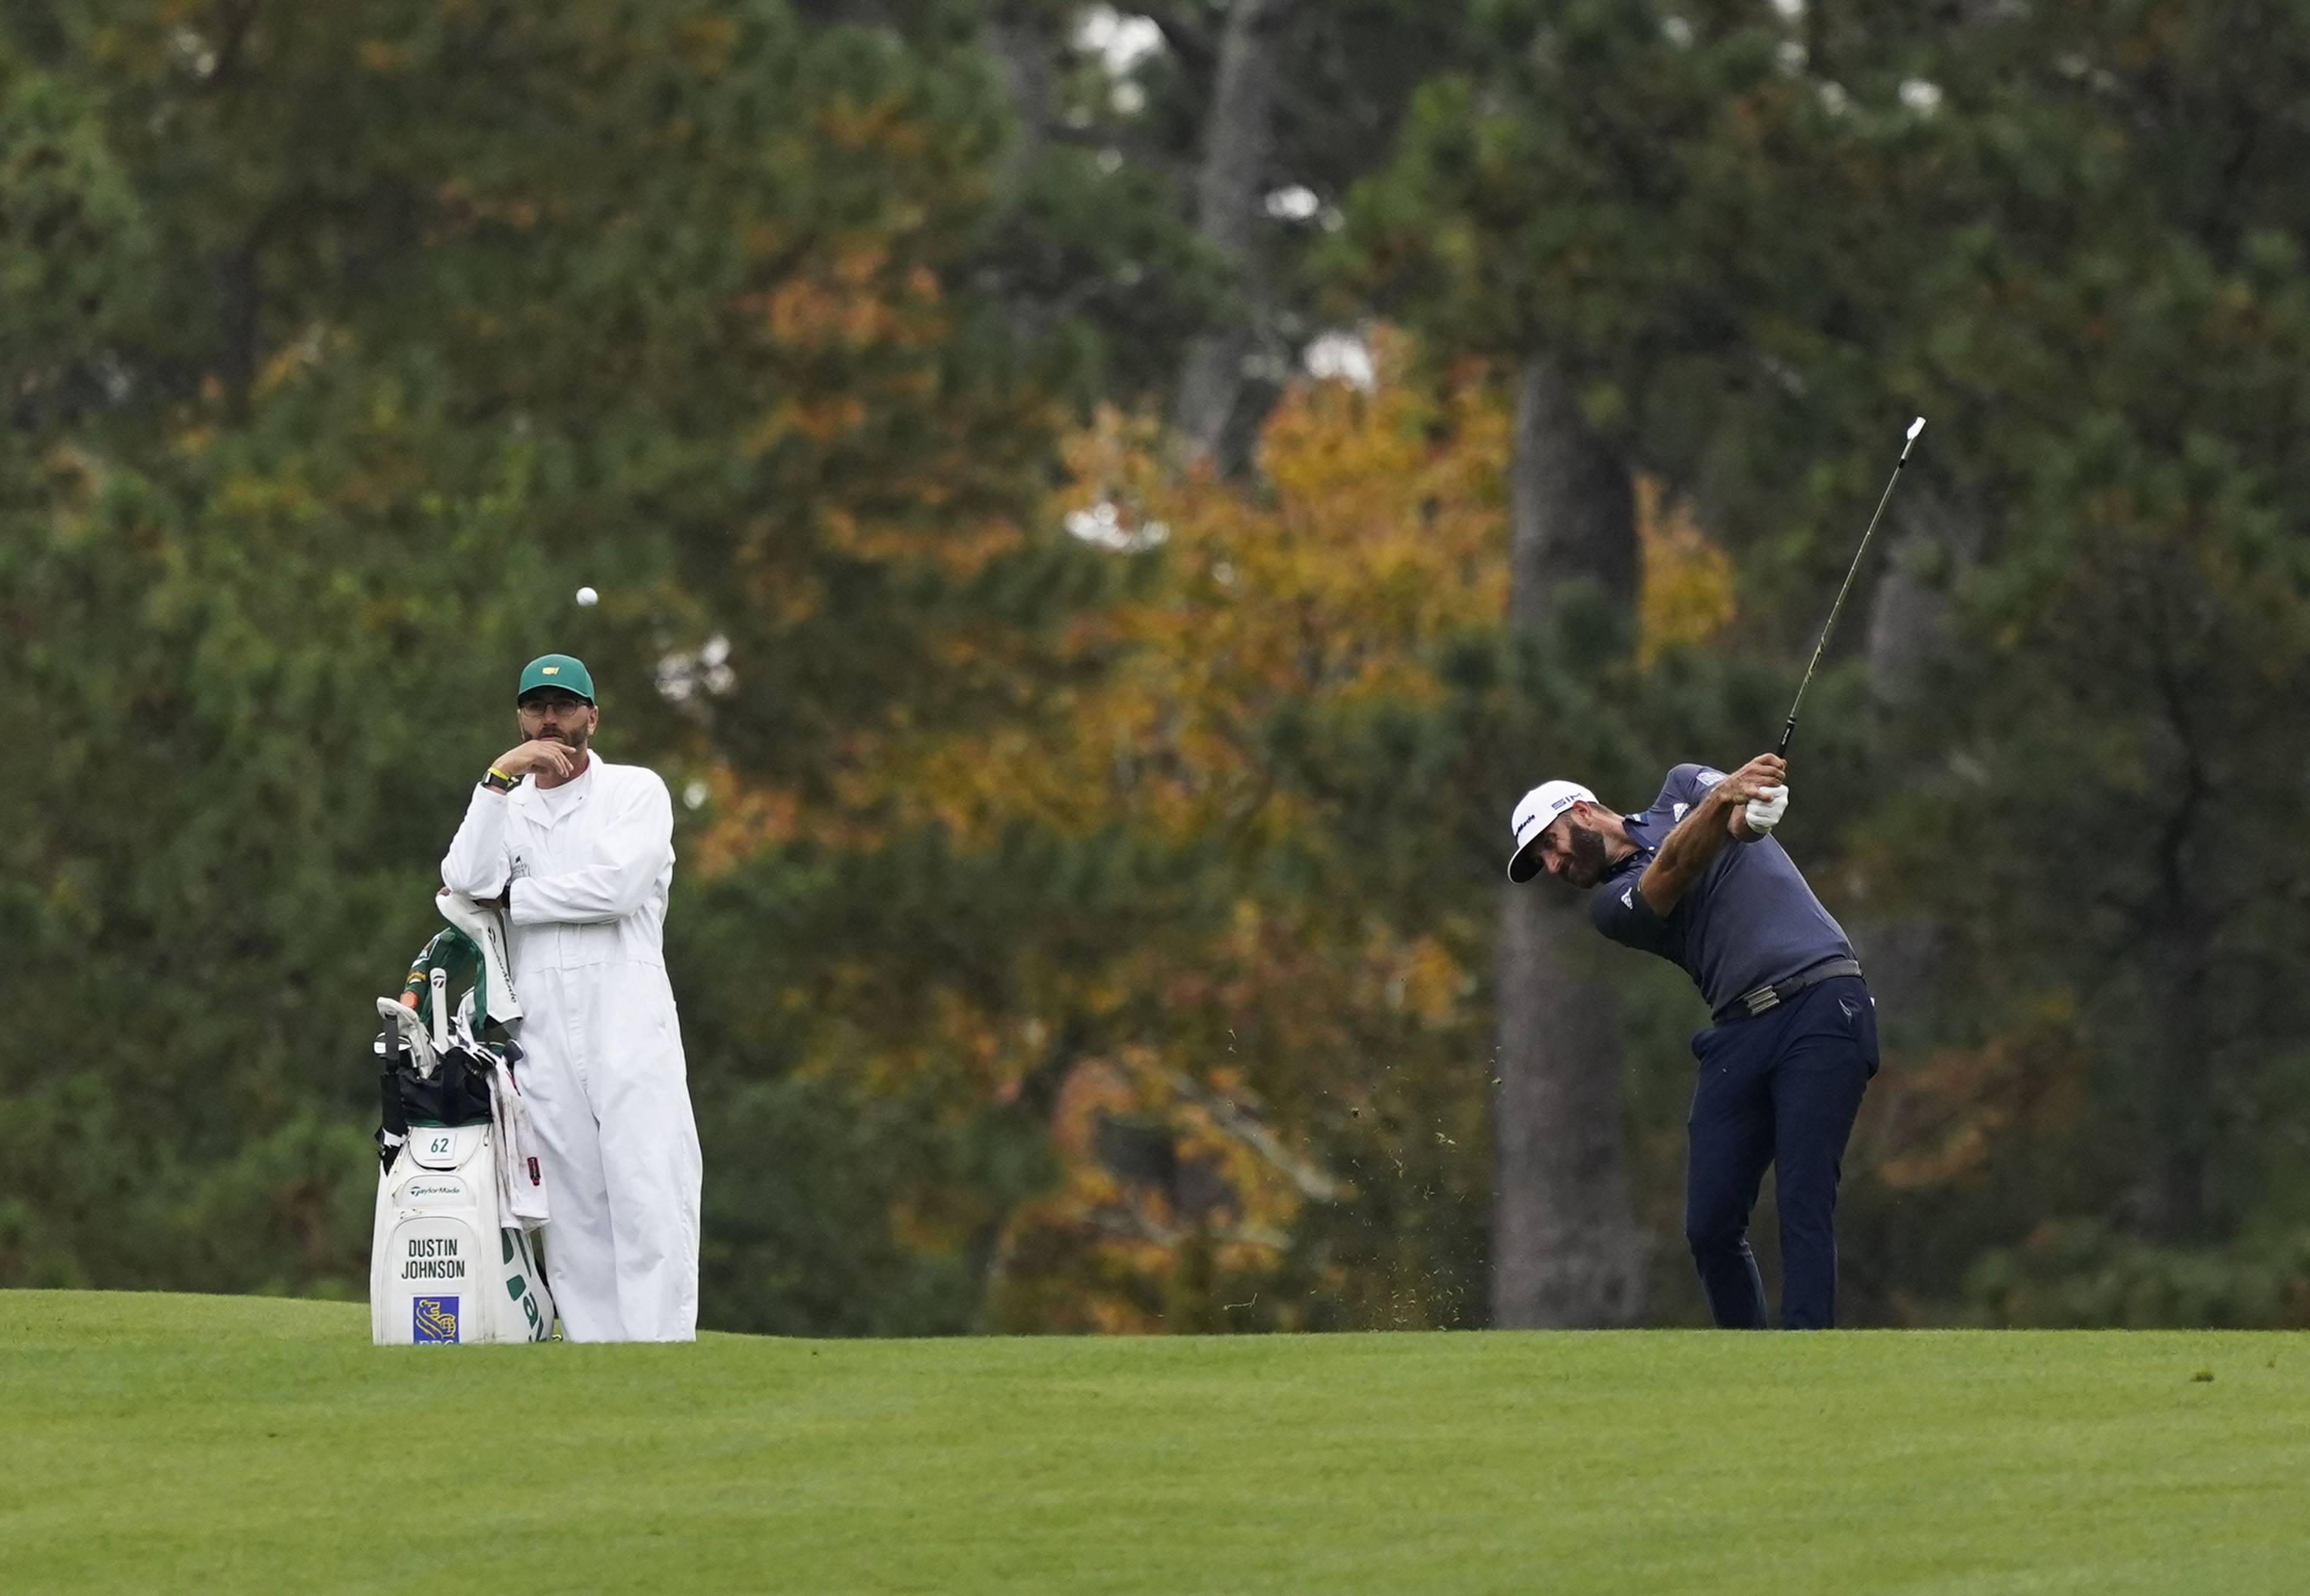 masters golf betting games